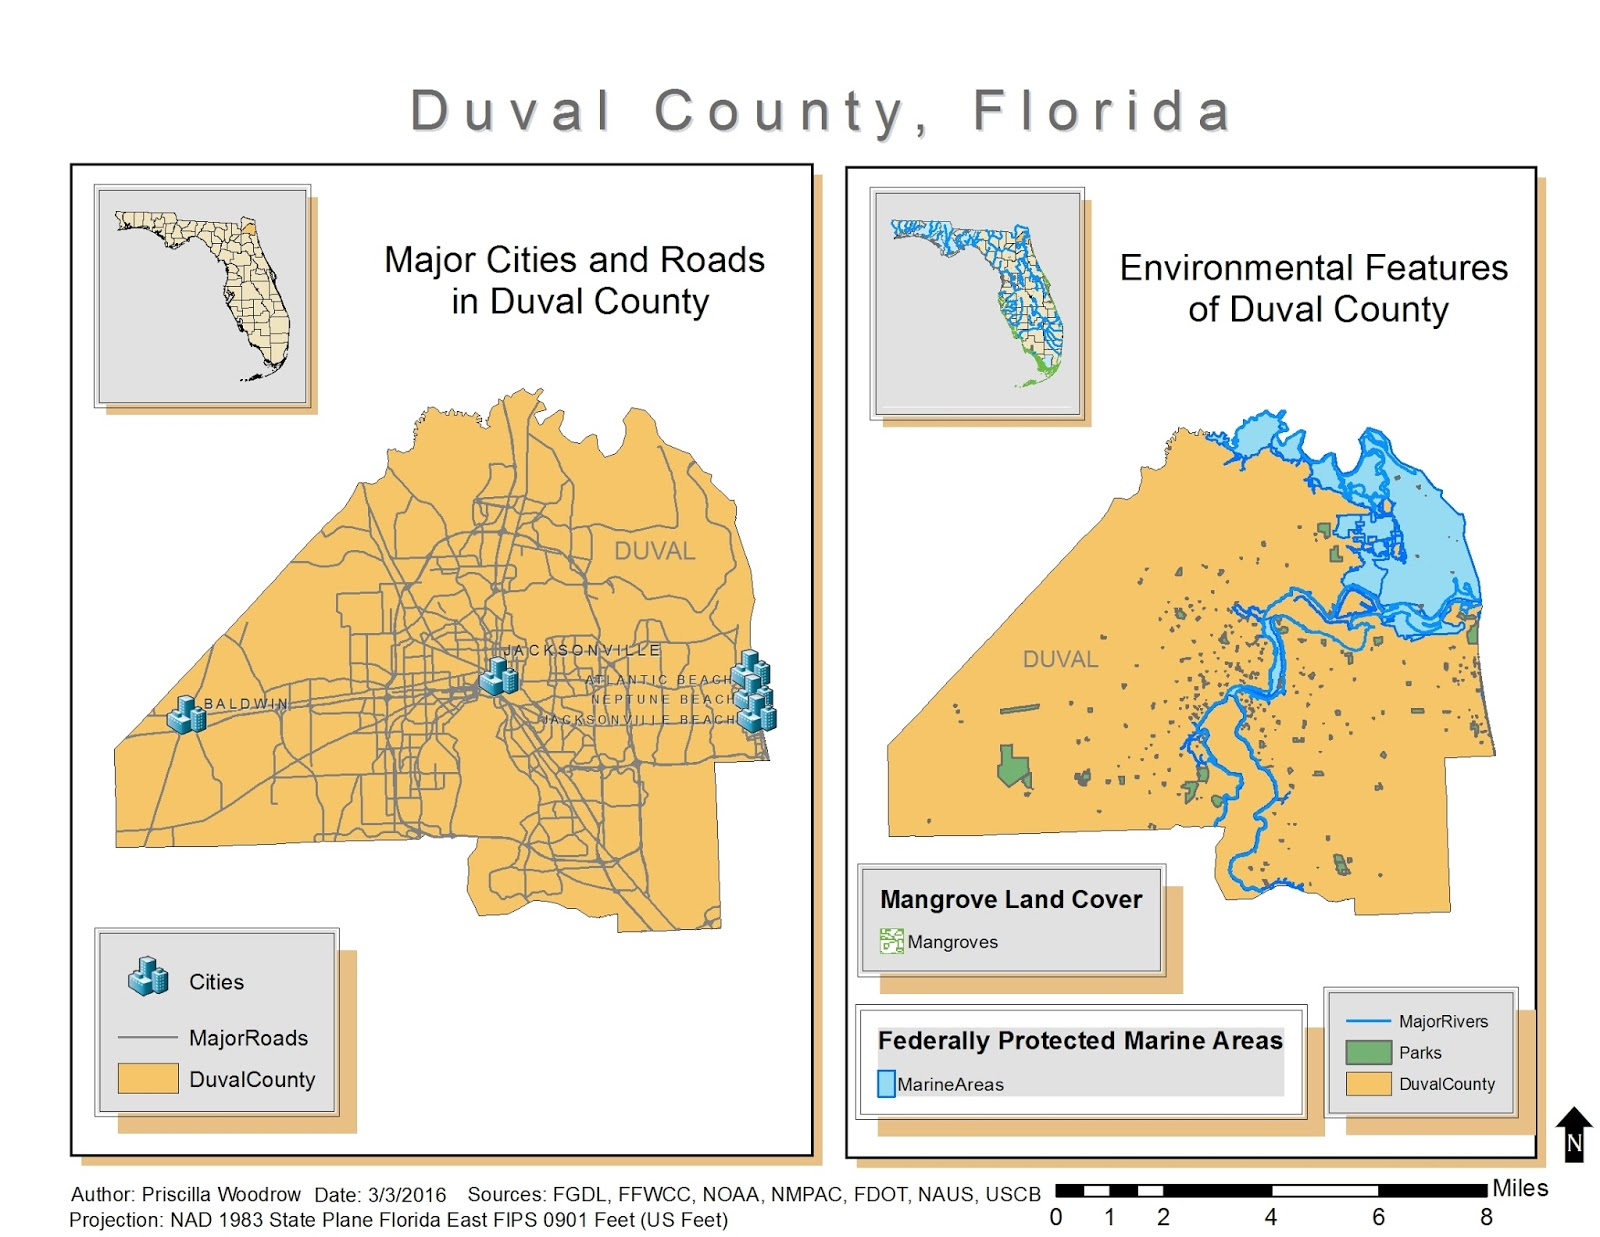 this map shows the vector data i acquired on the left the map depicts the major cities and roads in duval county on the right the map depicts parks